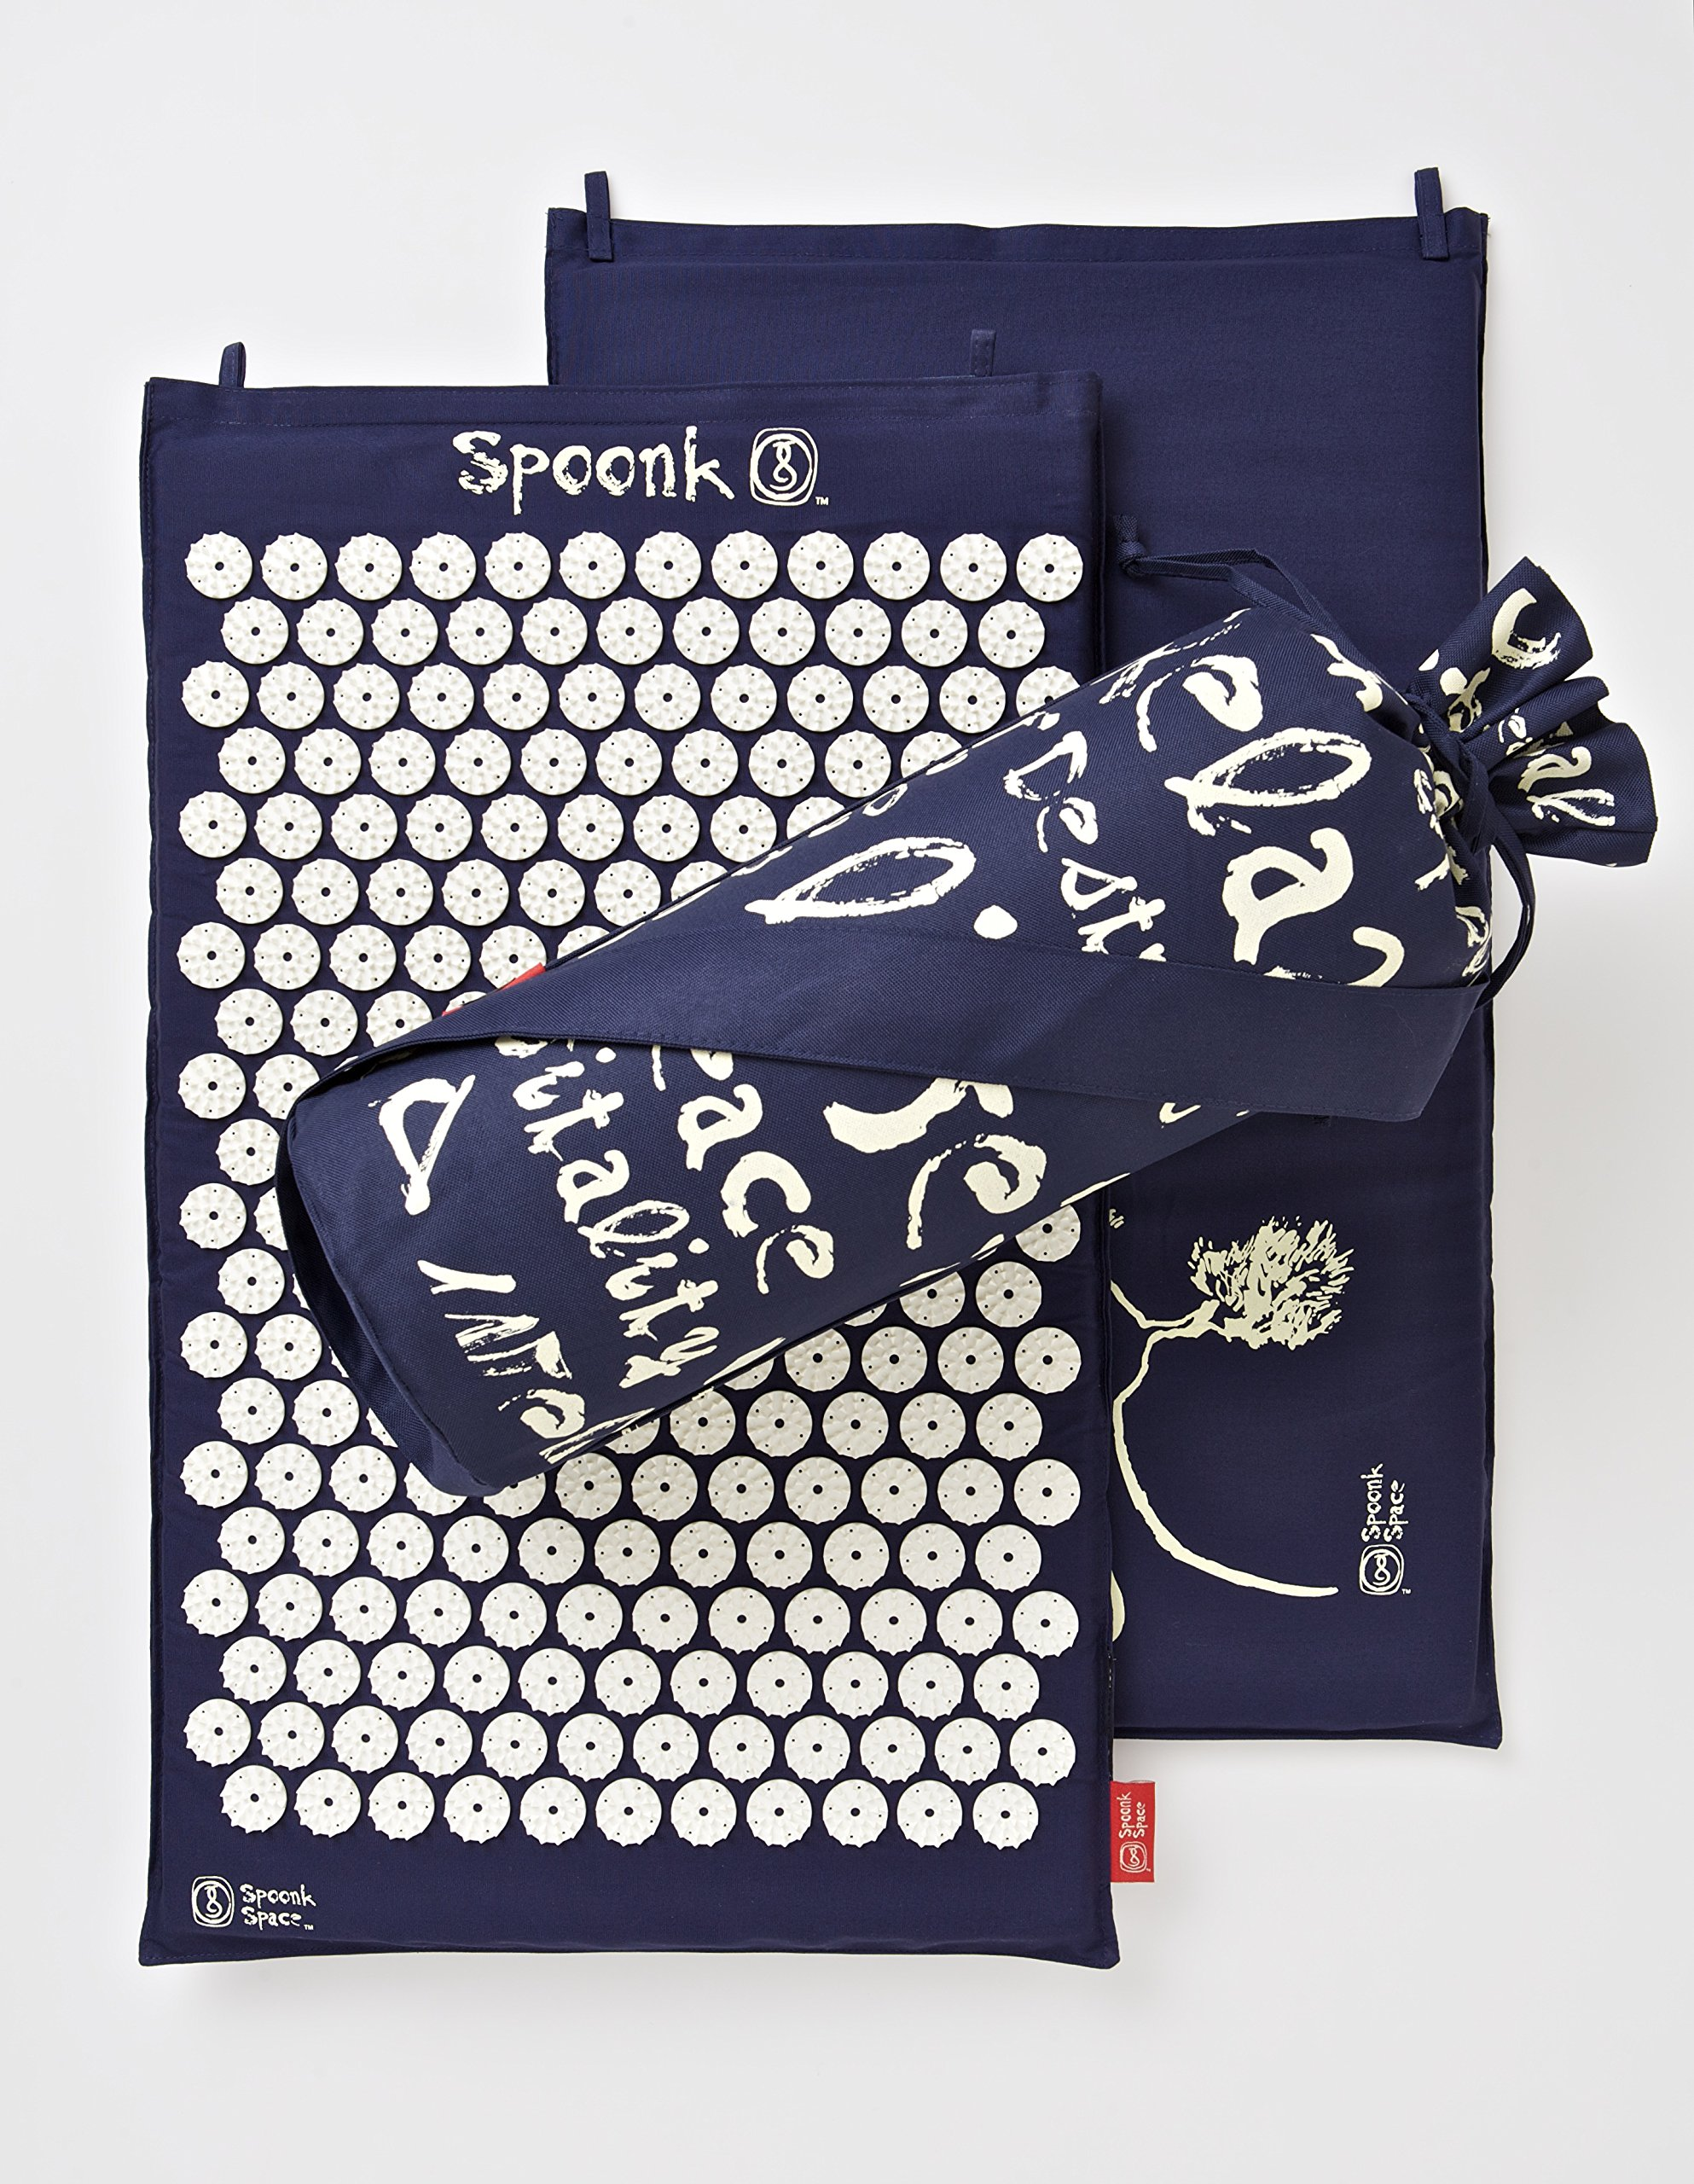 Cotton Spoonk Mat /Eco Foam US Made/ top quality/ O list 2013 -- NAVY by Spoonk